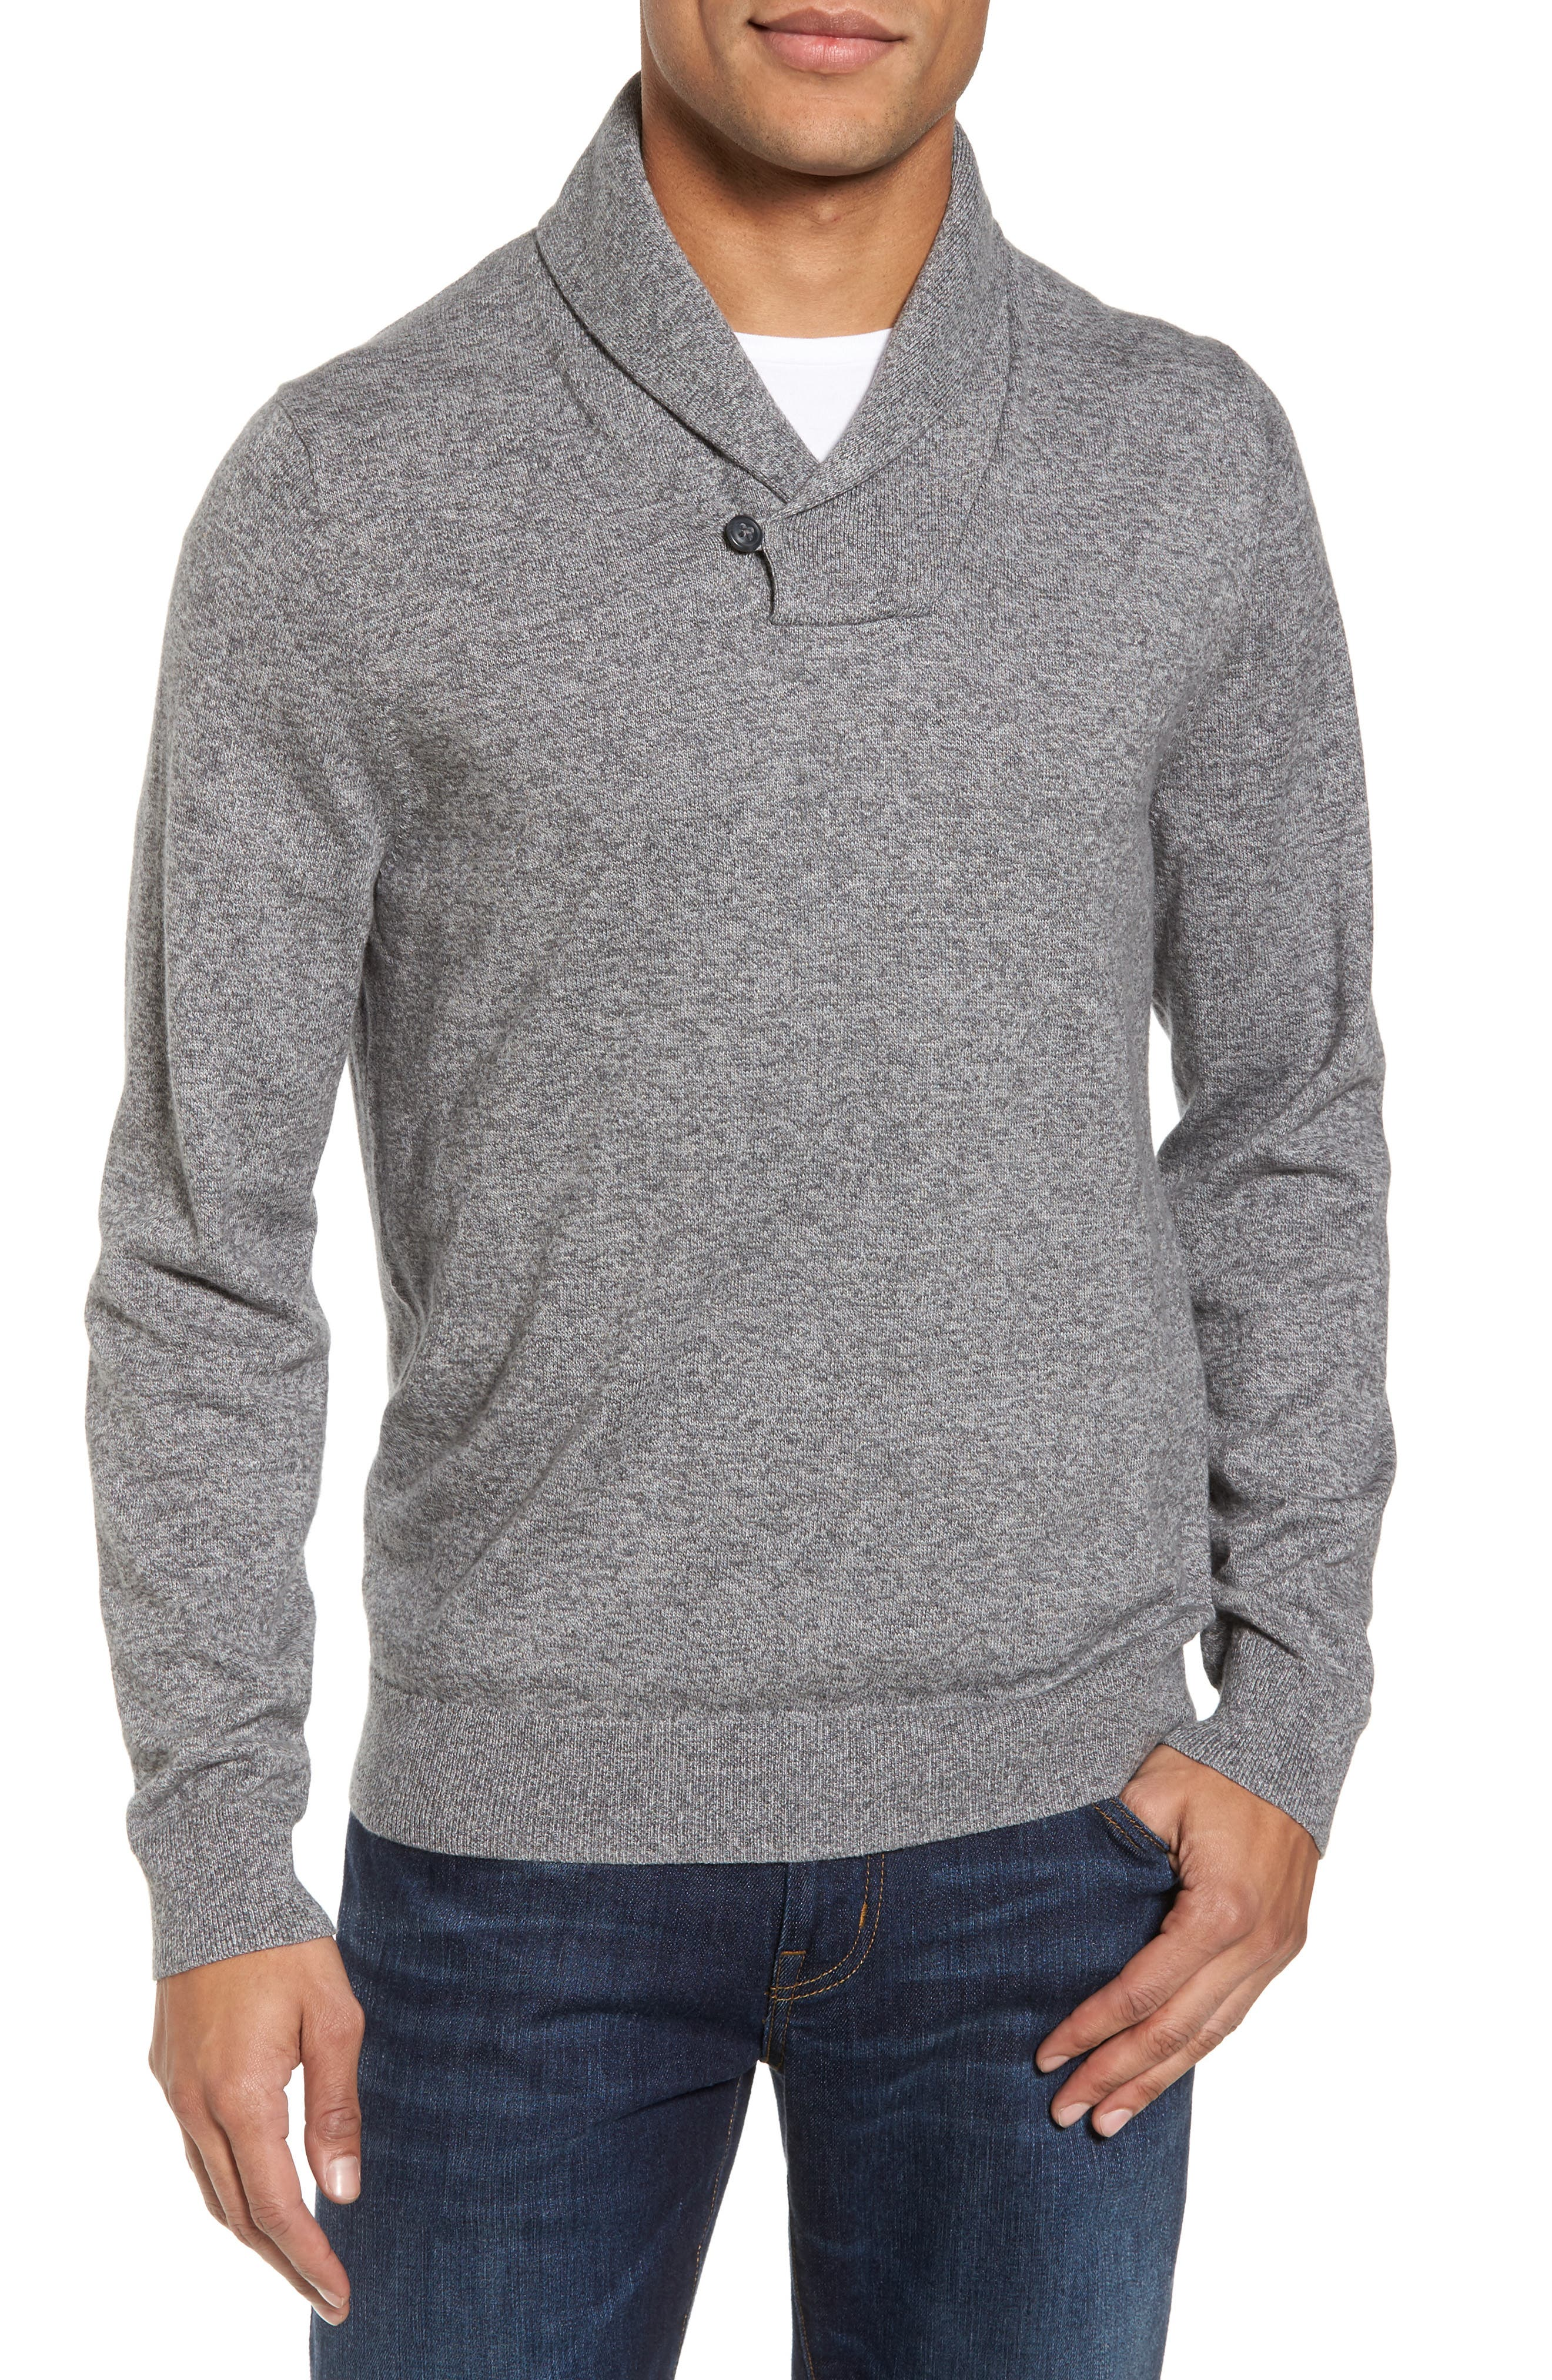 Main Image - Nordstrom Men's Shop Cotton & Cashmere Shawl Collar Sweater (Regular & Tall)